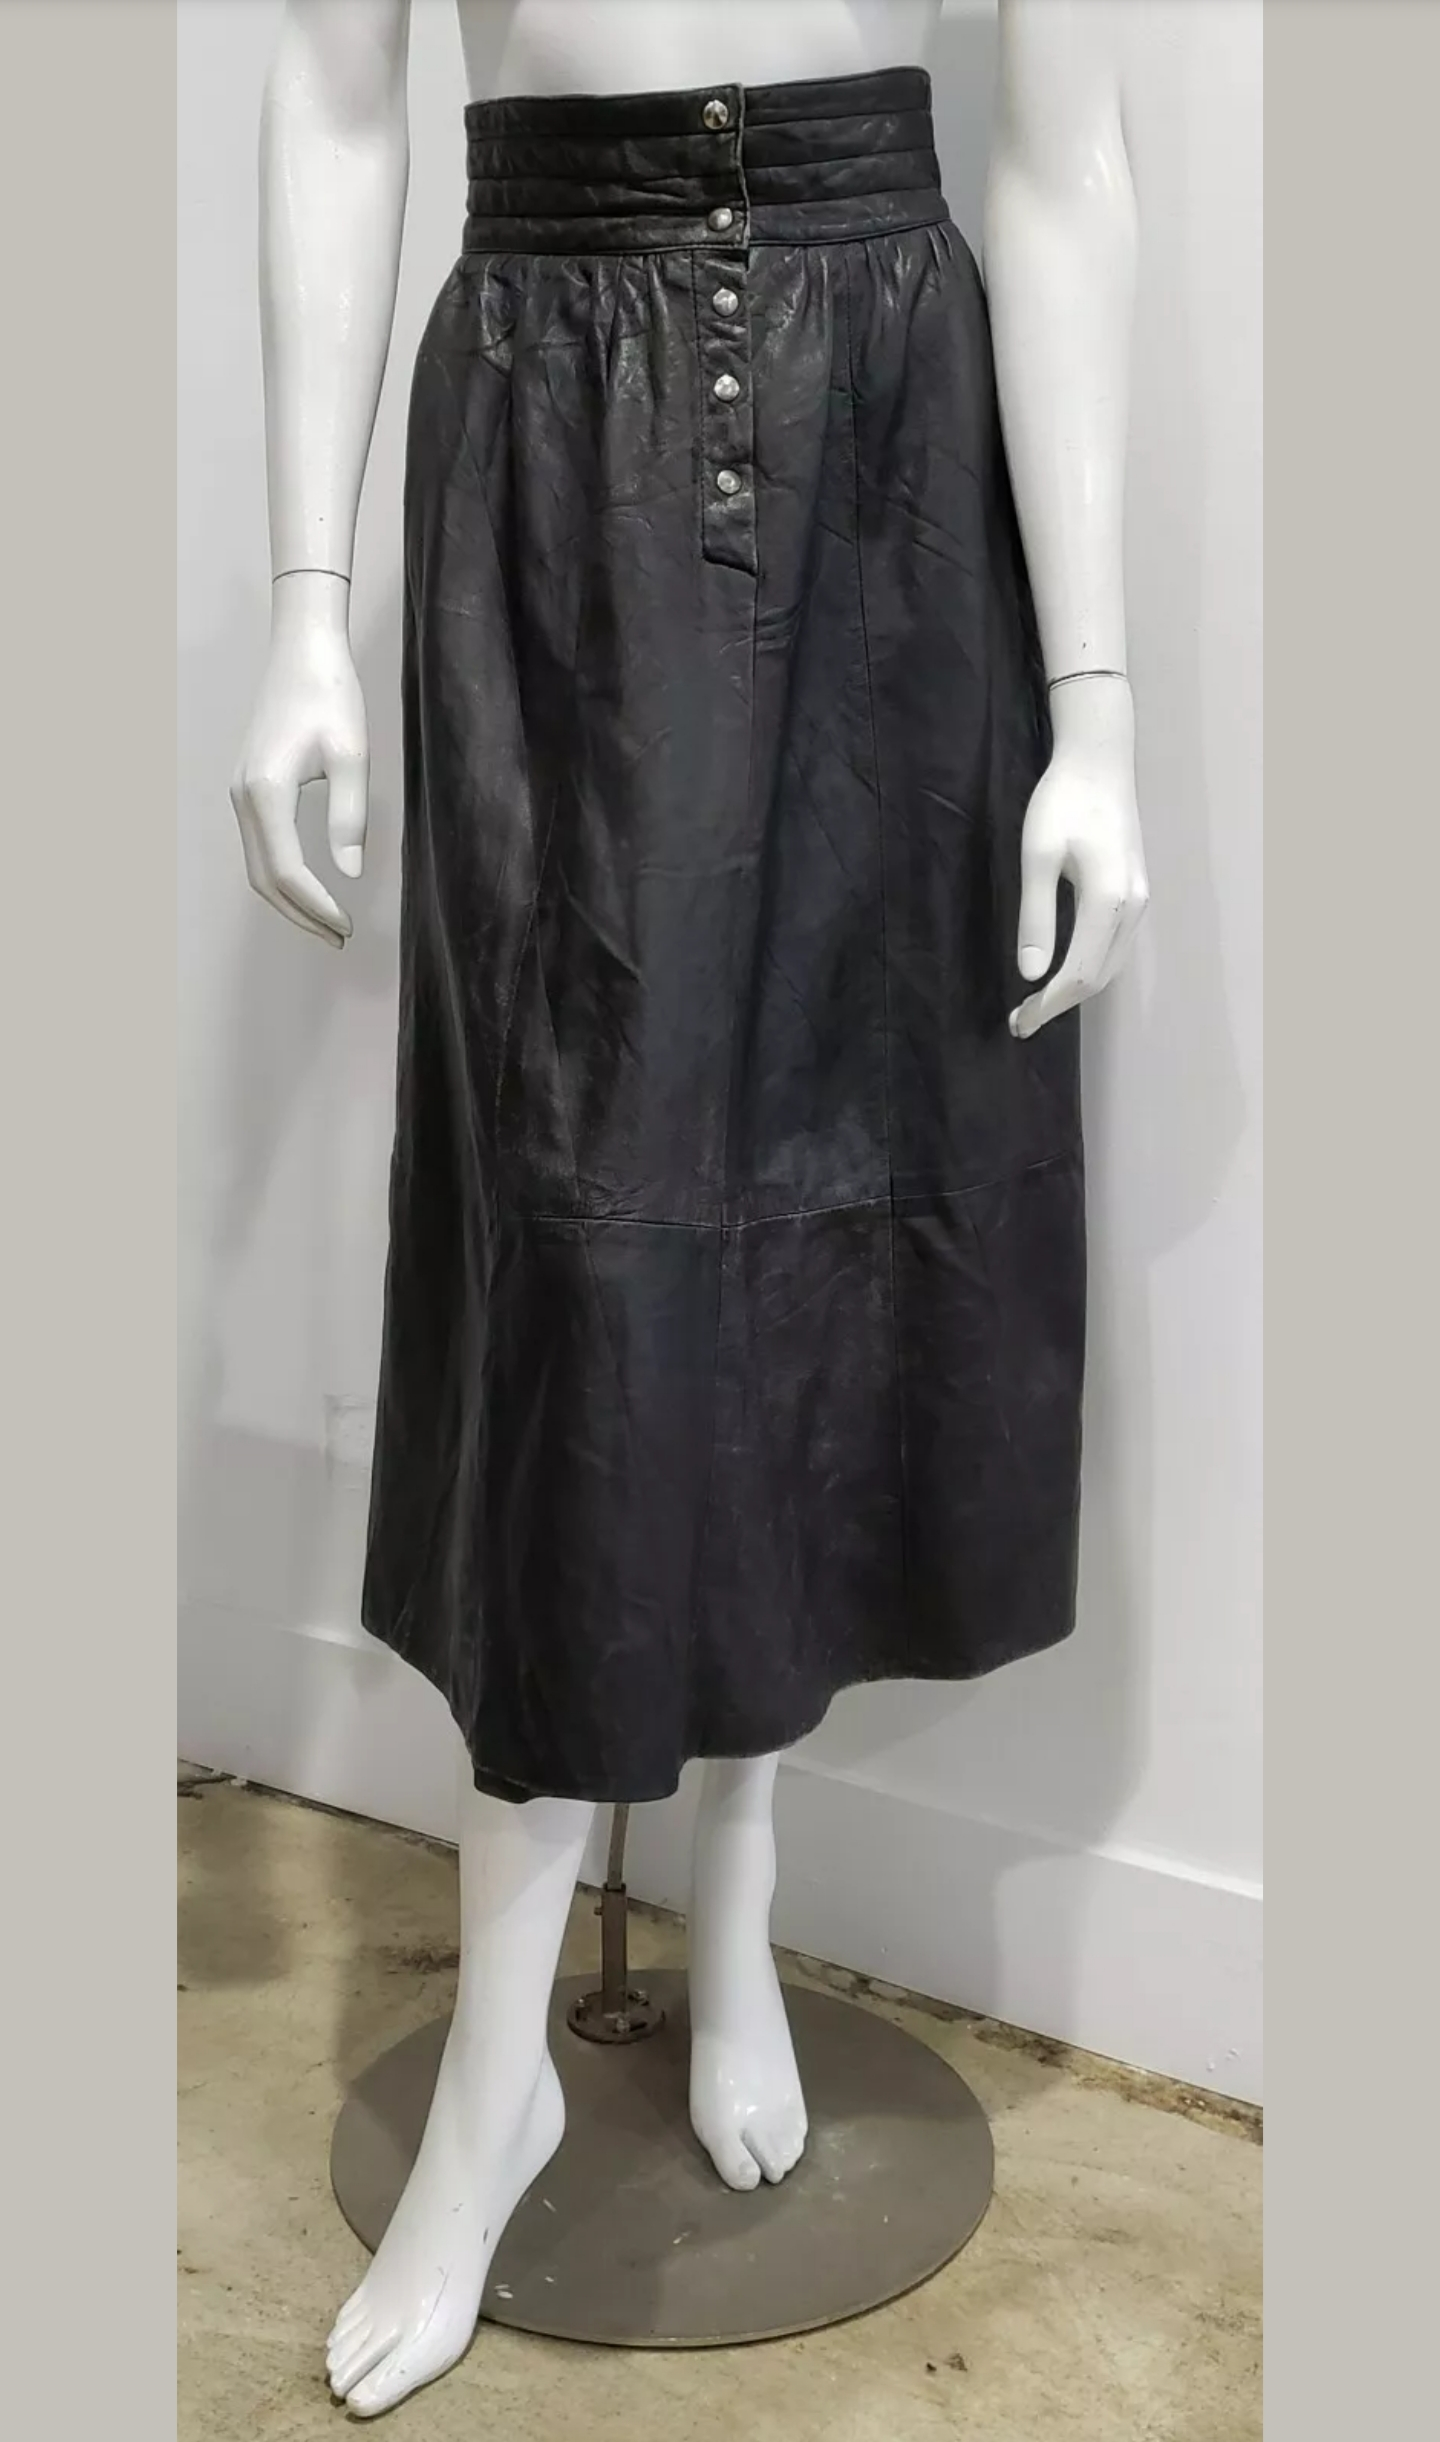 Vintage Black High Waist Leather Midi Skirt